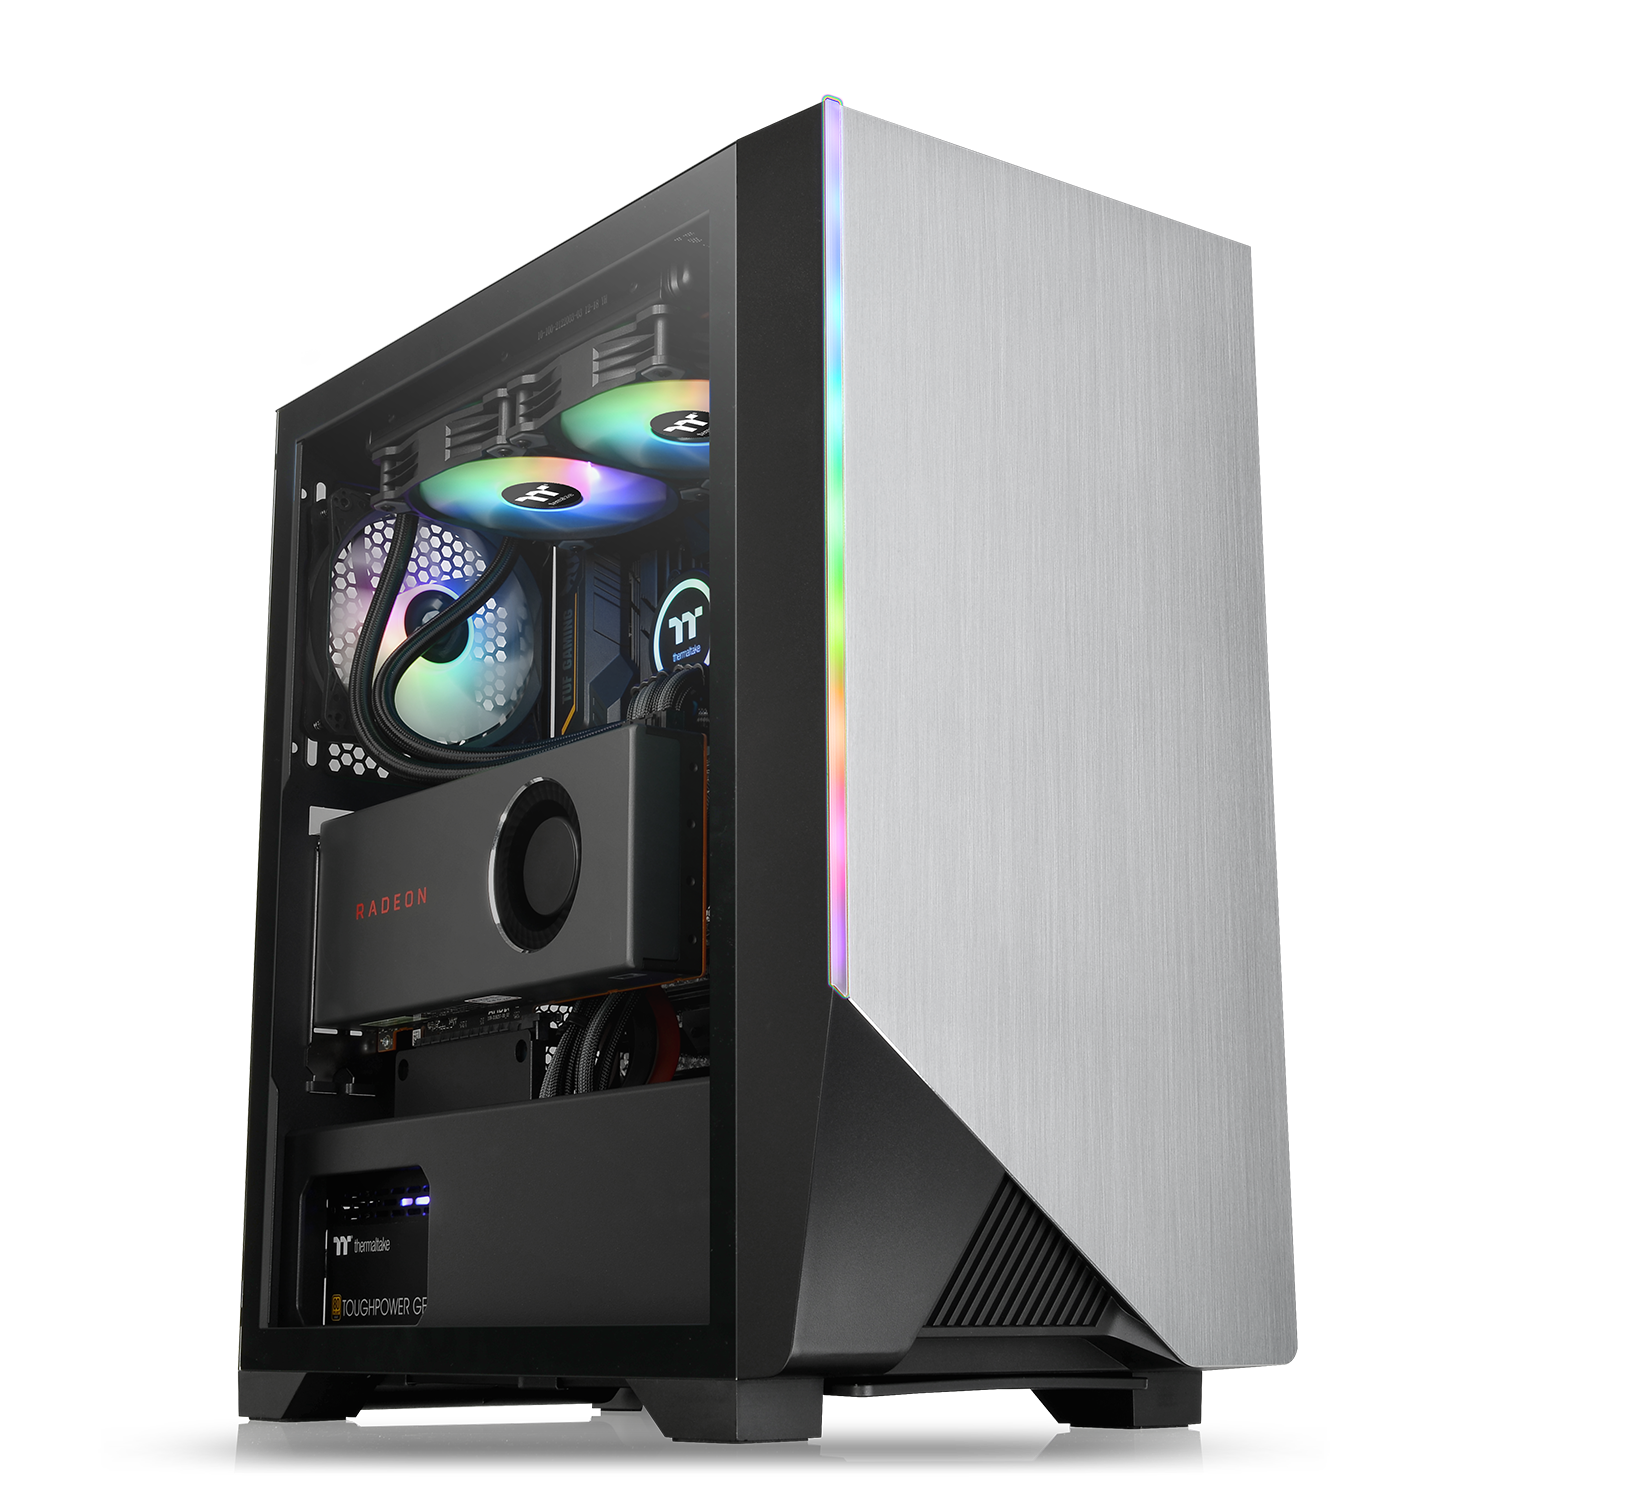 NdP - Thermaltake H550 TG ARGB Mid-Tower Chassis